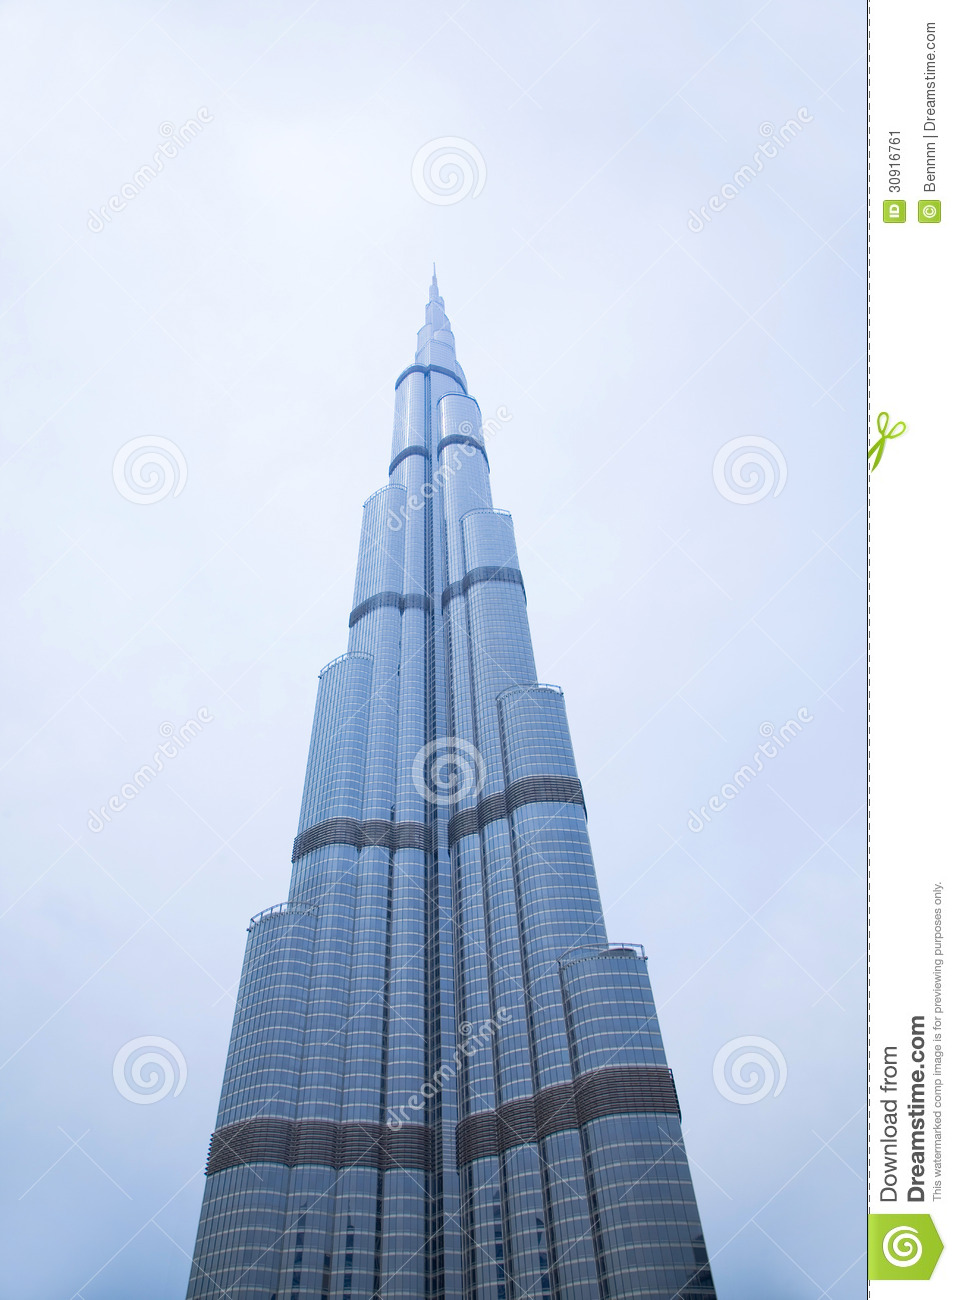 UAE  Burj Khalifa is a tallest building in the world  at 828m  LocatedUae Tallest Building In The World